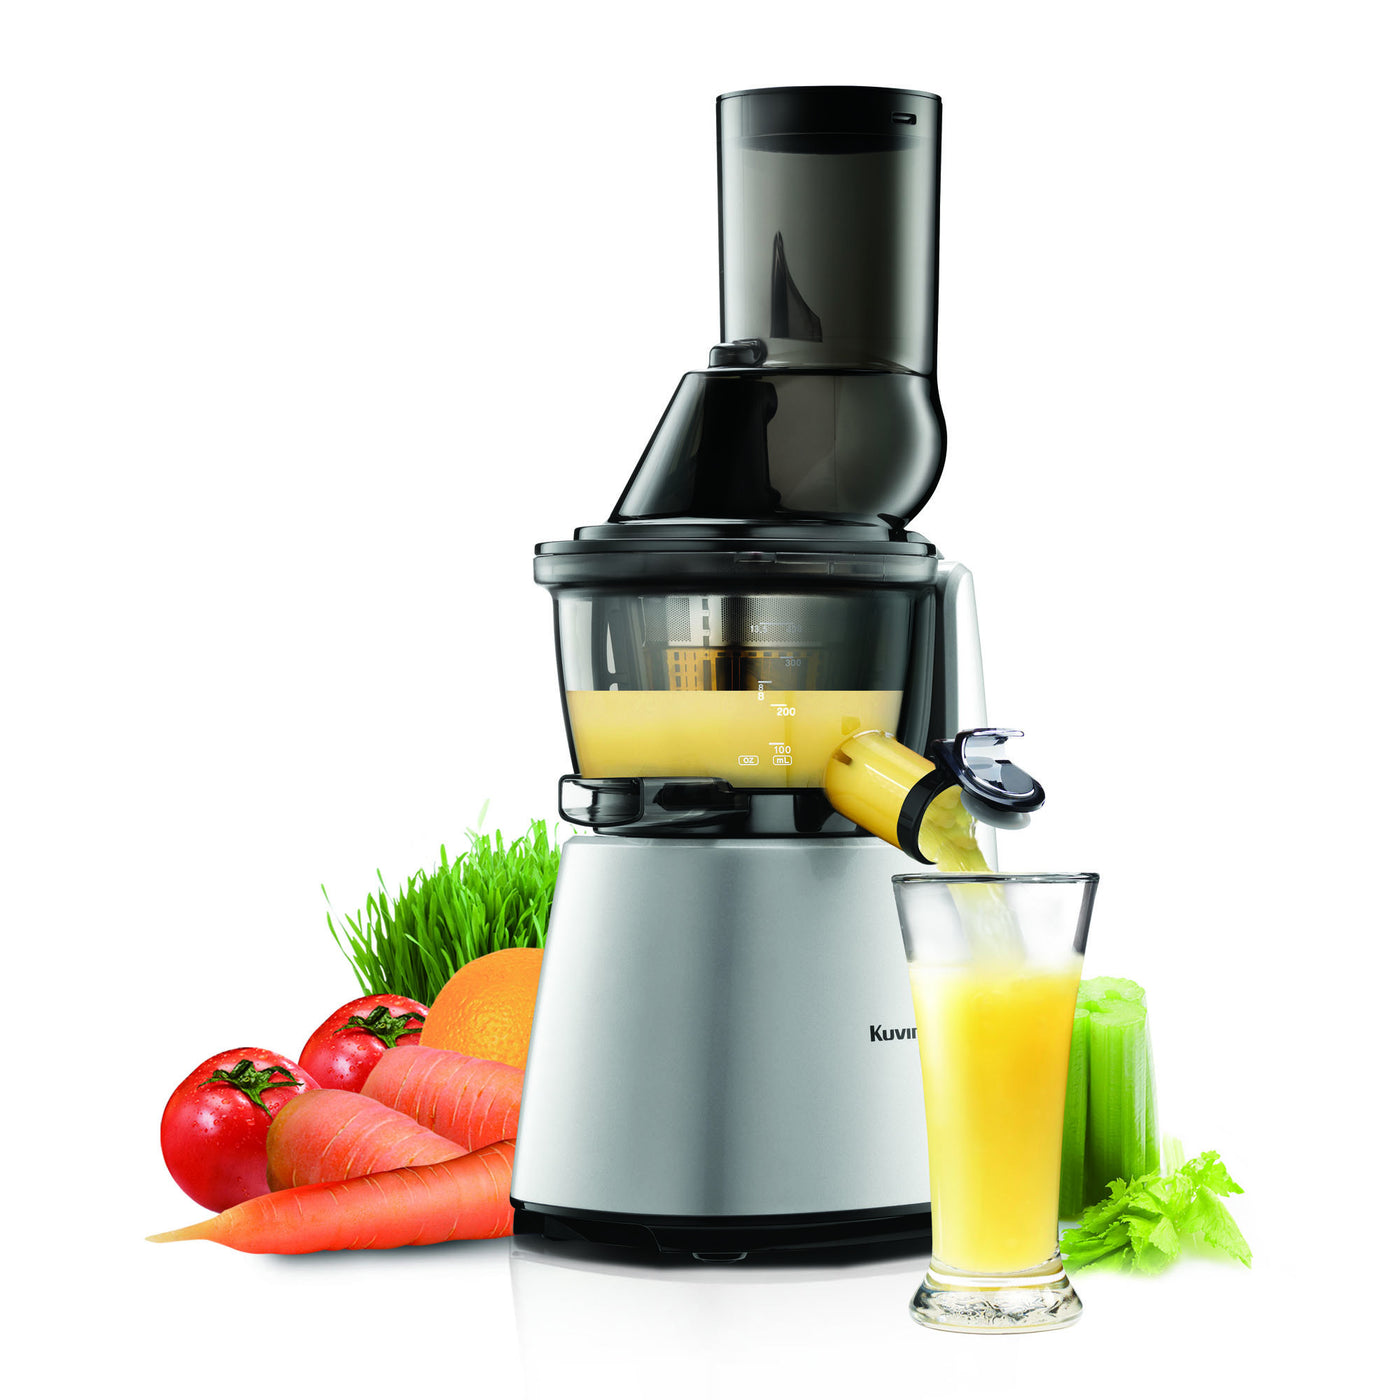 Kuvings Whole Slow Juicer C7000 Review : Kuvings Elite Whole Slow Juicer C7000 Juicerville